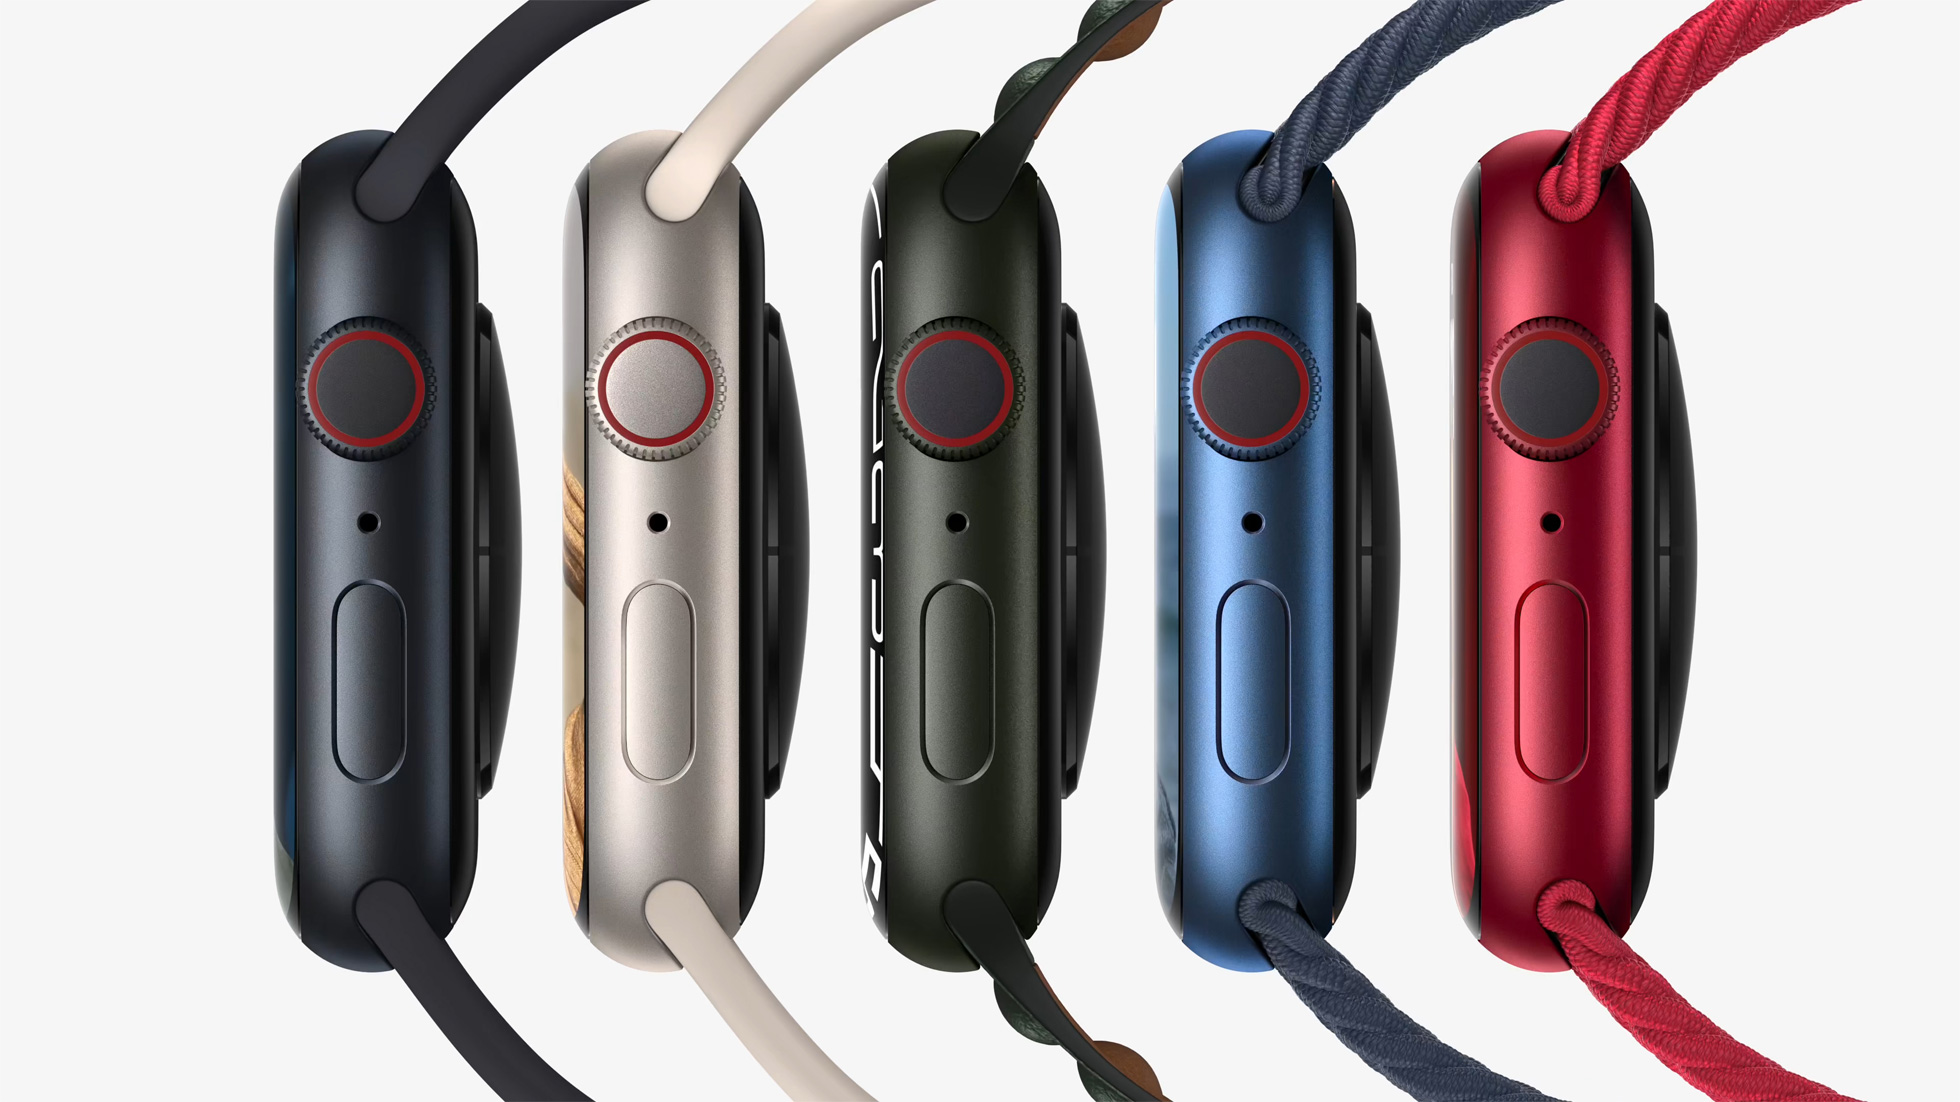 A side view of all the Apple Watch Series 7 models and colors